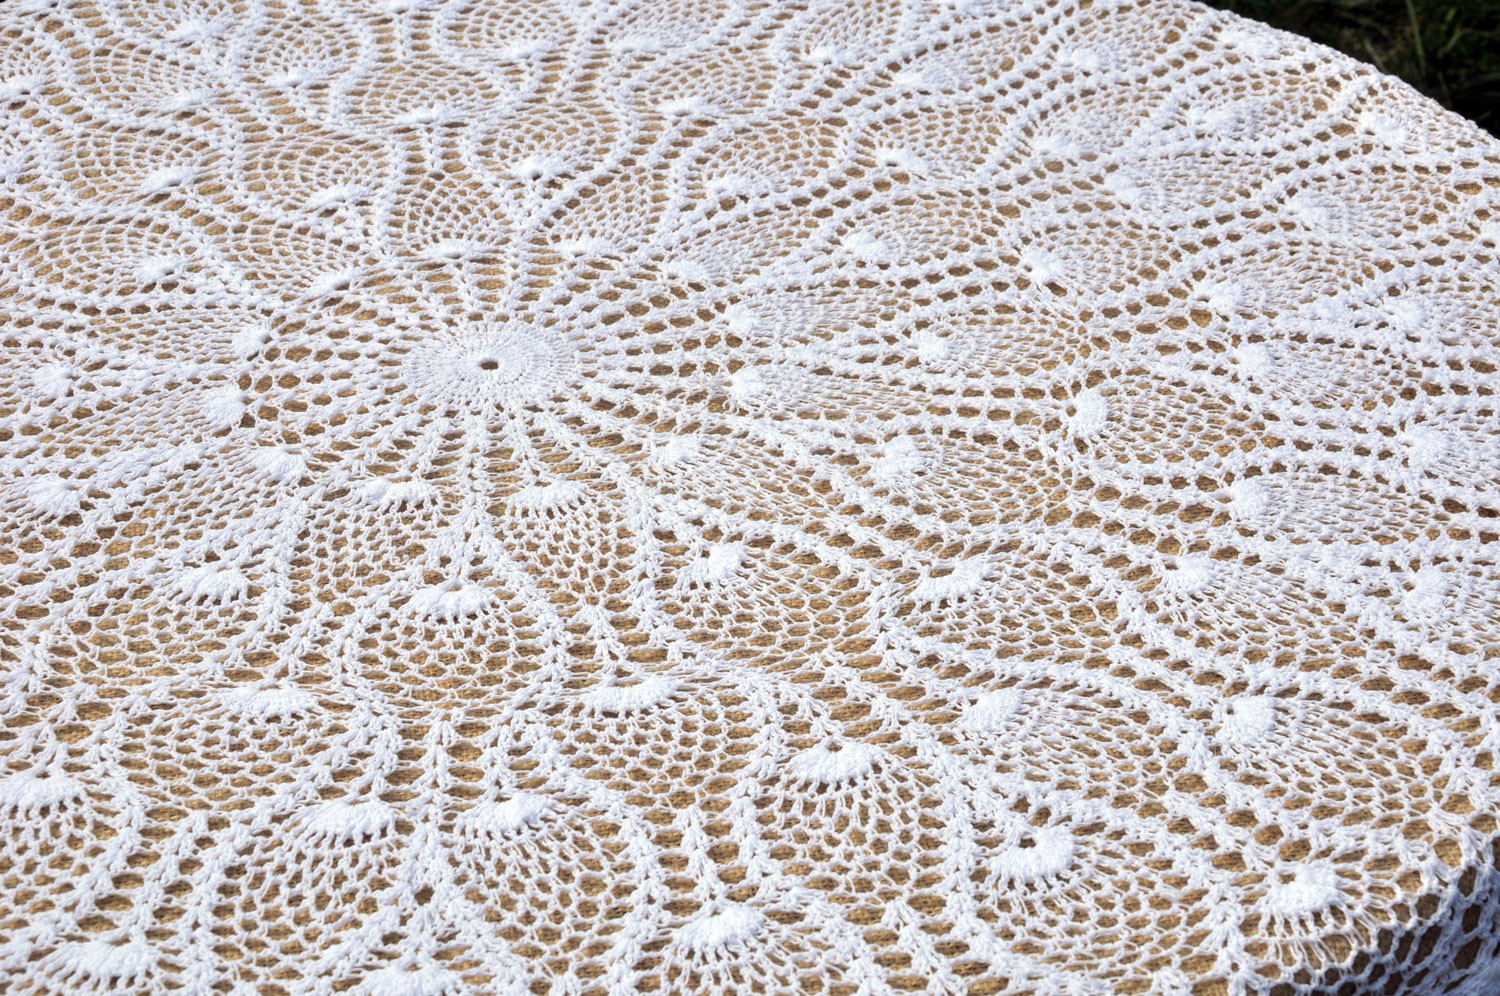 Crochet Round Tablecloth Pattern Free Inspirational 90 Inch Round Lace Crochet Tablecloth Of Incredible 48 Pictures Crochet Round Tablecloth Pattern Free